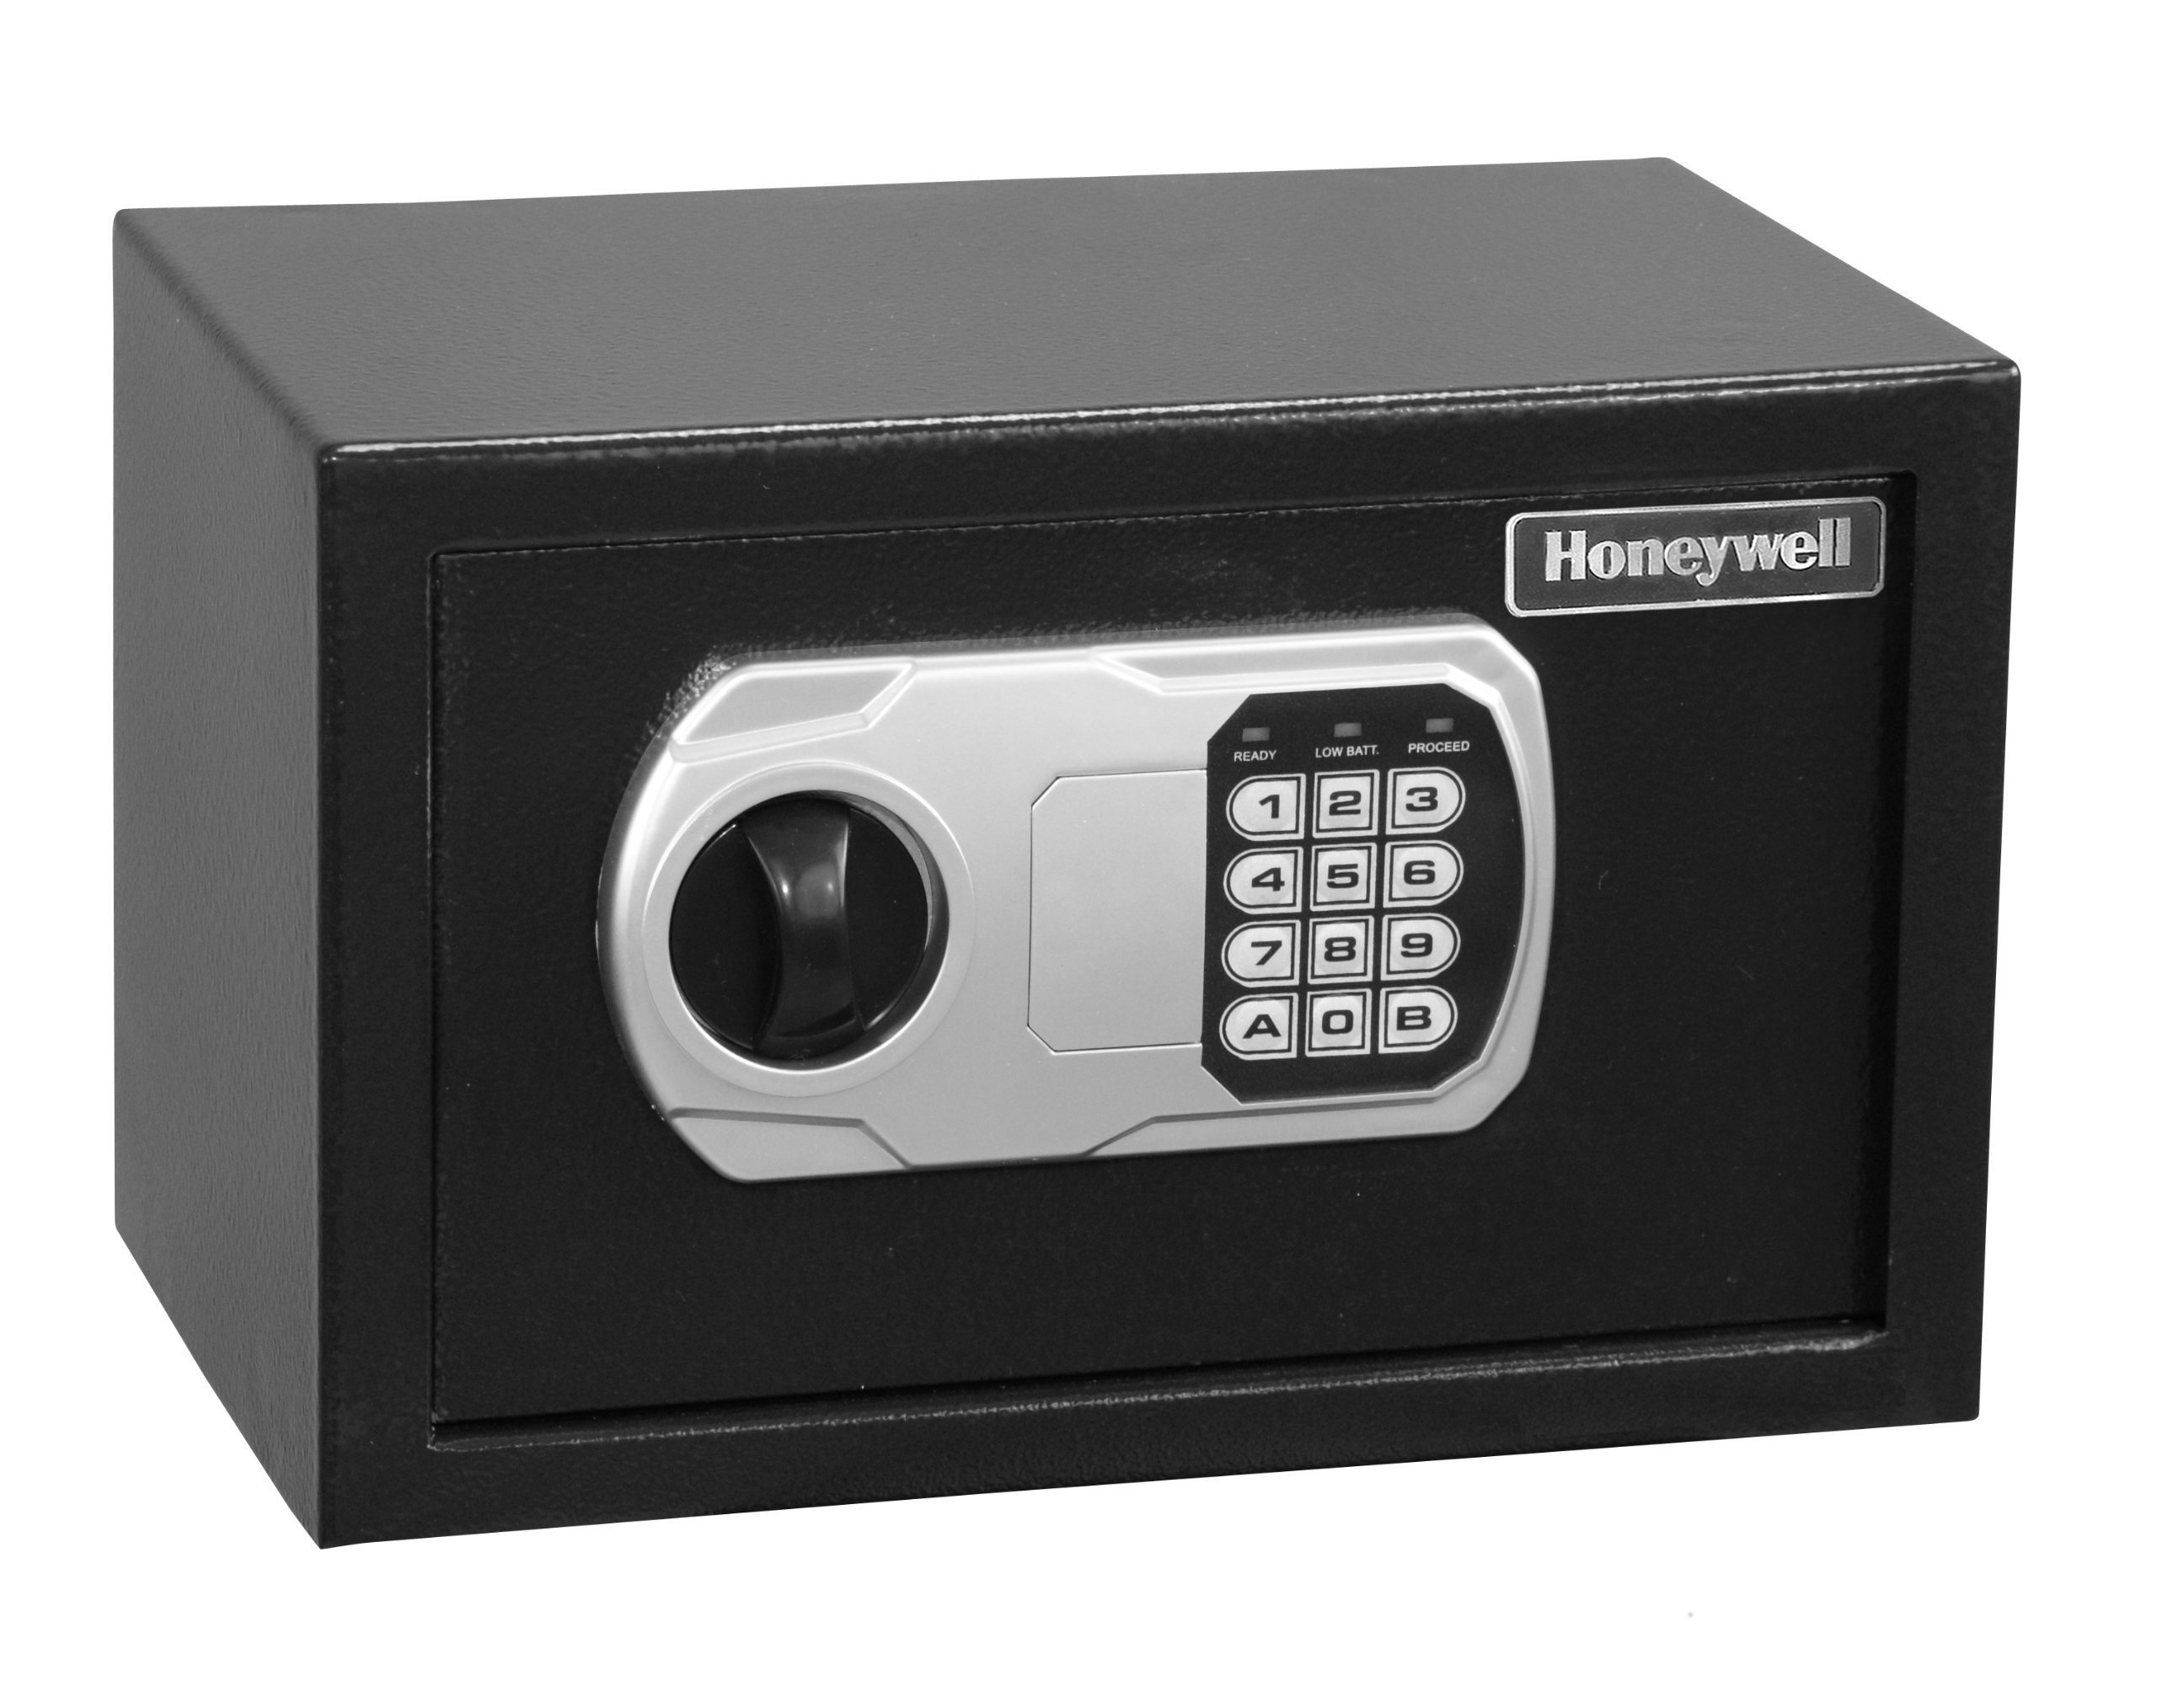 HONEYWELL - 5101 Steel Security Safe with Hotel-Style Digital Lock, 0.27-Cubic Feet, Black